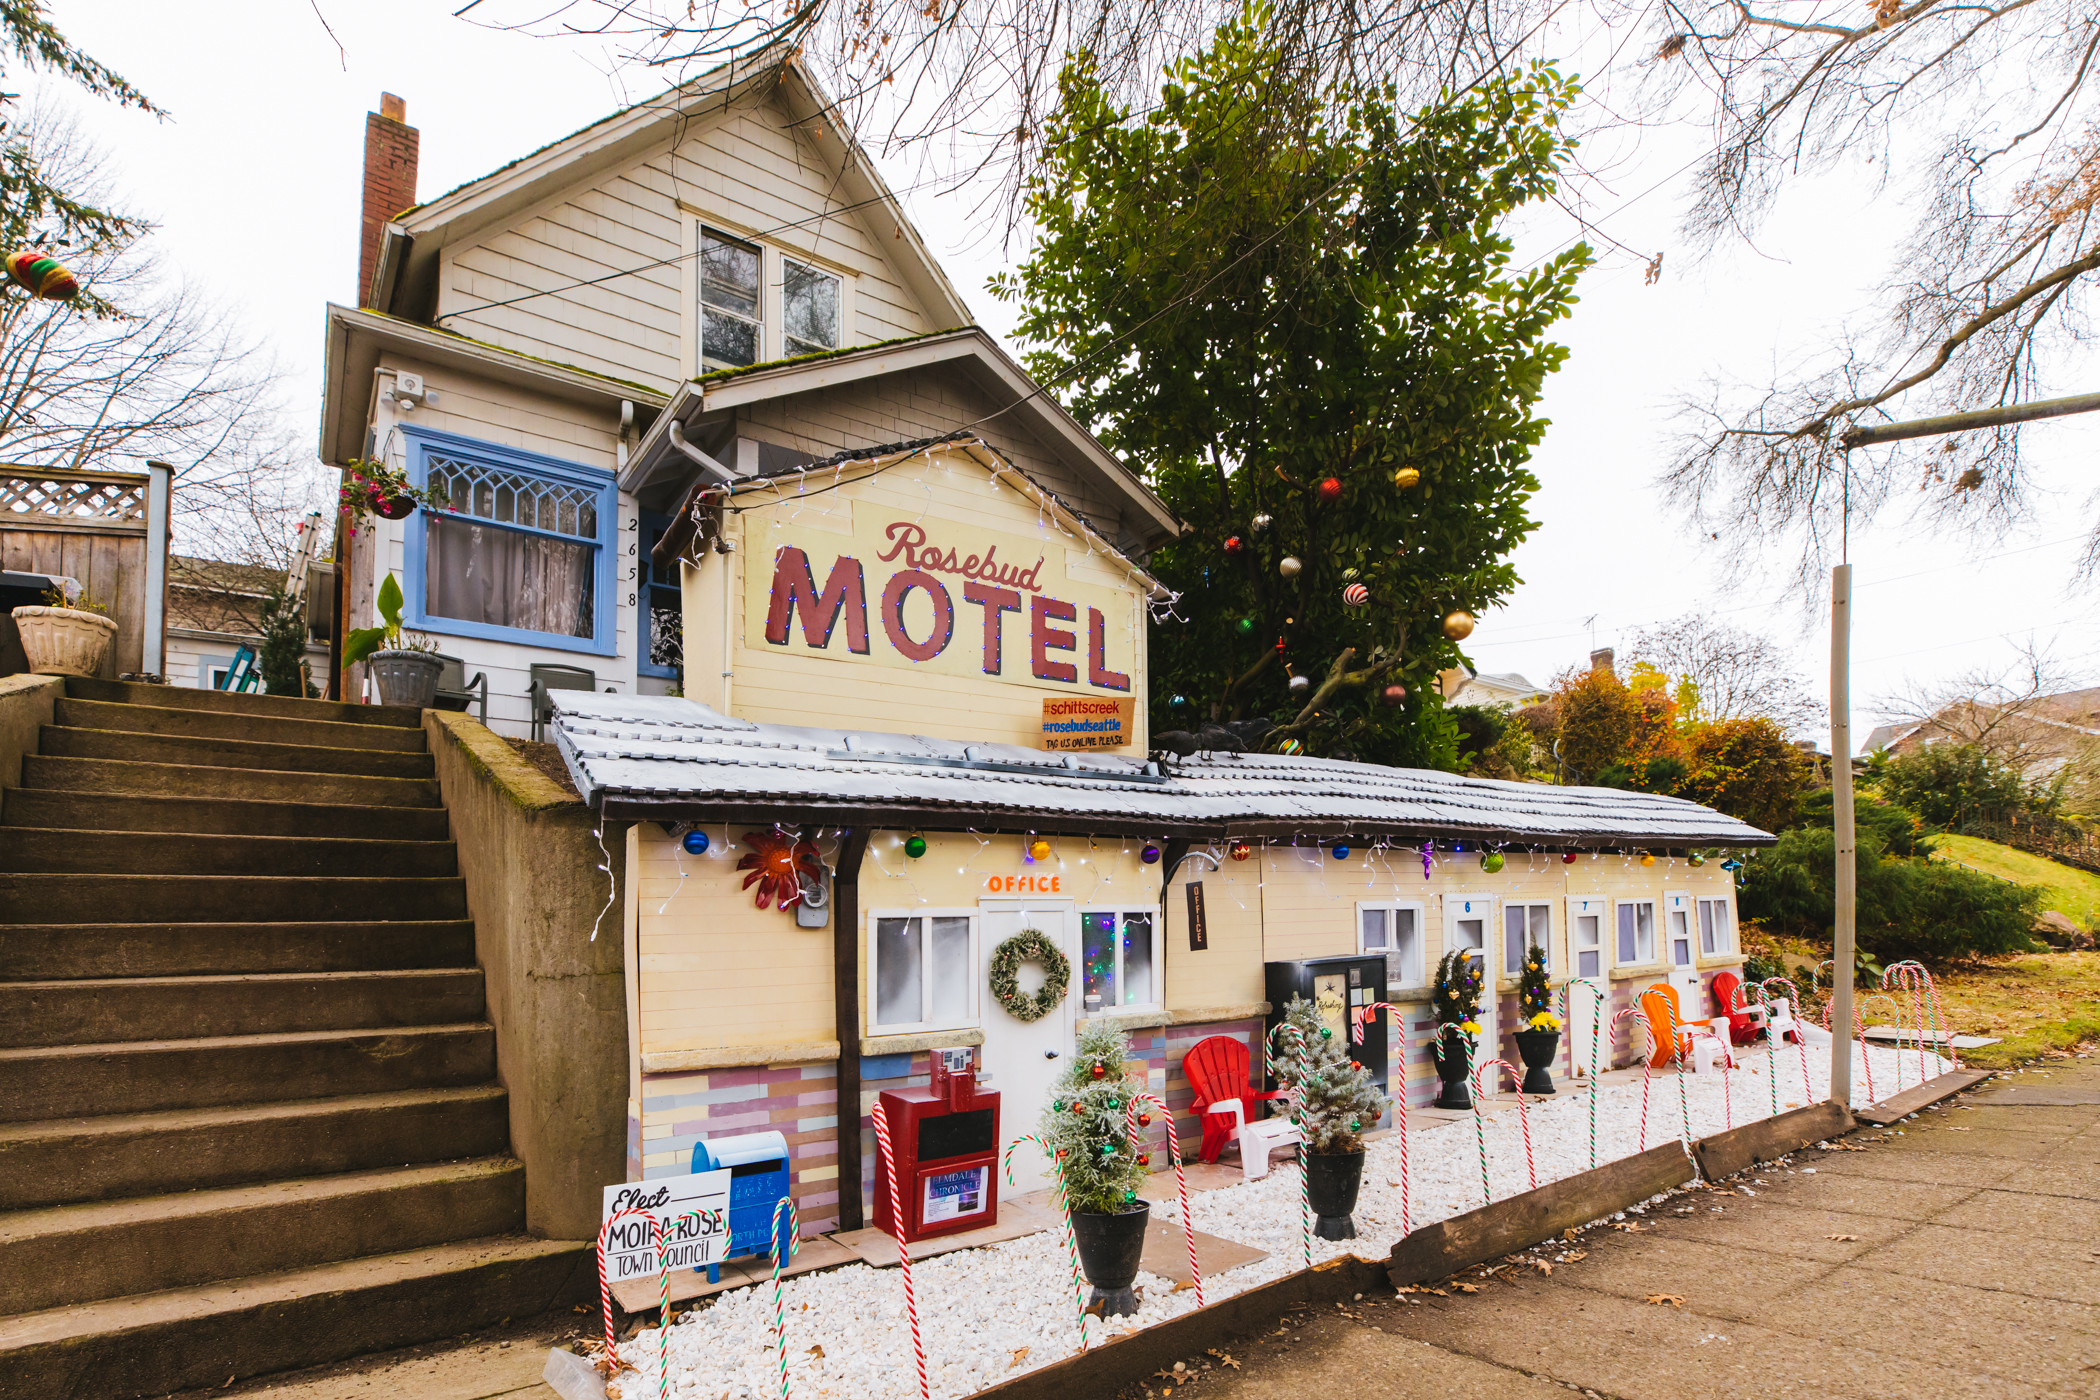 "Well look at that, Day-vahd [said in our best Moira Rose voice]! Richard Knowles, a resident in Seattle's Queen Anne neighborhood, has created a mini Rosebud Motel using the retaining wall outside their home for all fans of the award-winning show ""Schitt's Creek"" to come see. You can find the mini Rosebud around W Bothwell Street & 10th Avenue W in Queen Anne, and all six seasons of the hilarious (in our humble opinion) show on Netflix. (Image: Sunita Martini / Seattle Refined){ }"